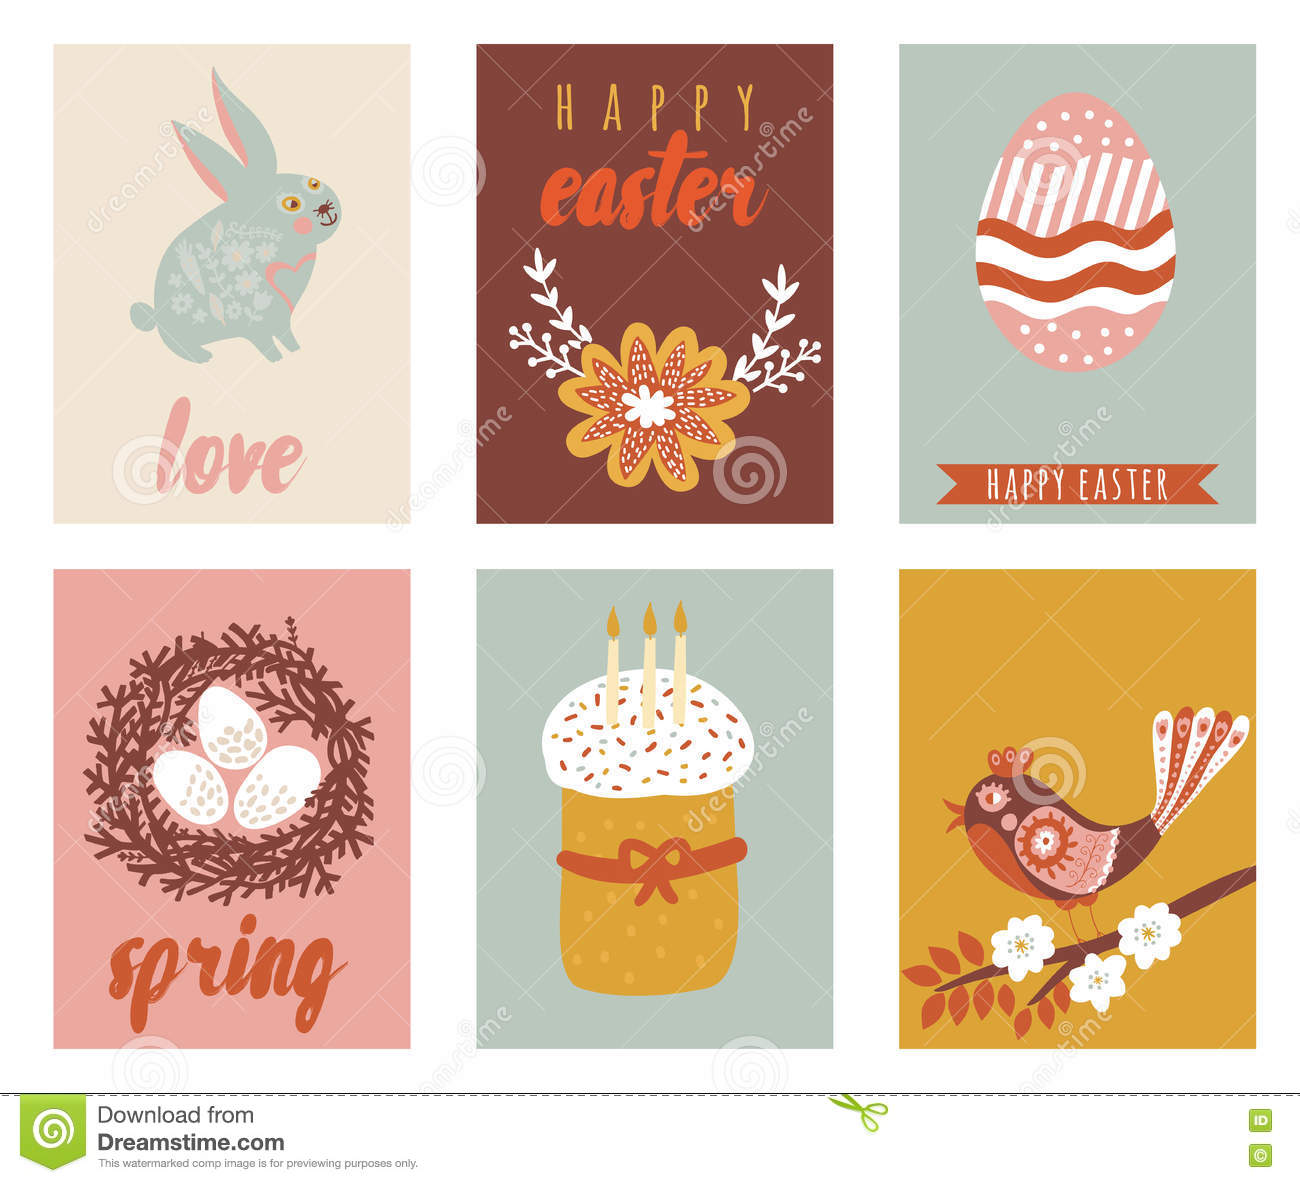 Happy Easter Greeting Cards Template With Easter Eggs Stock Vector